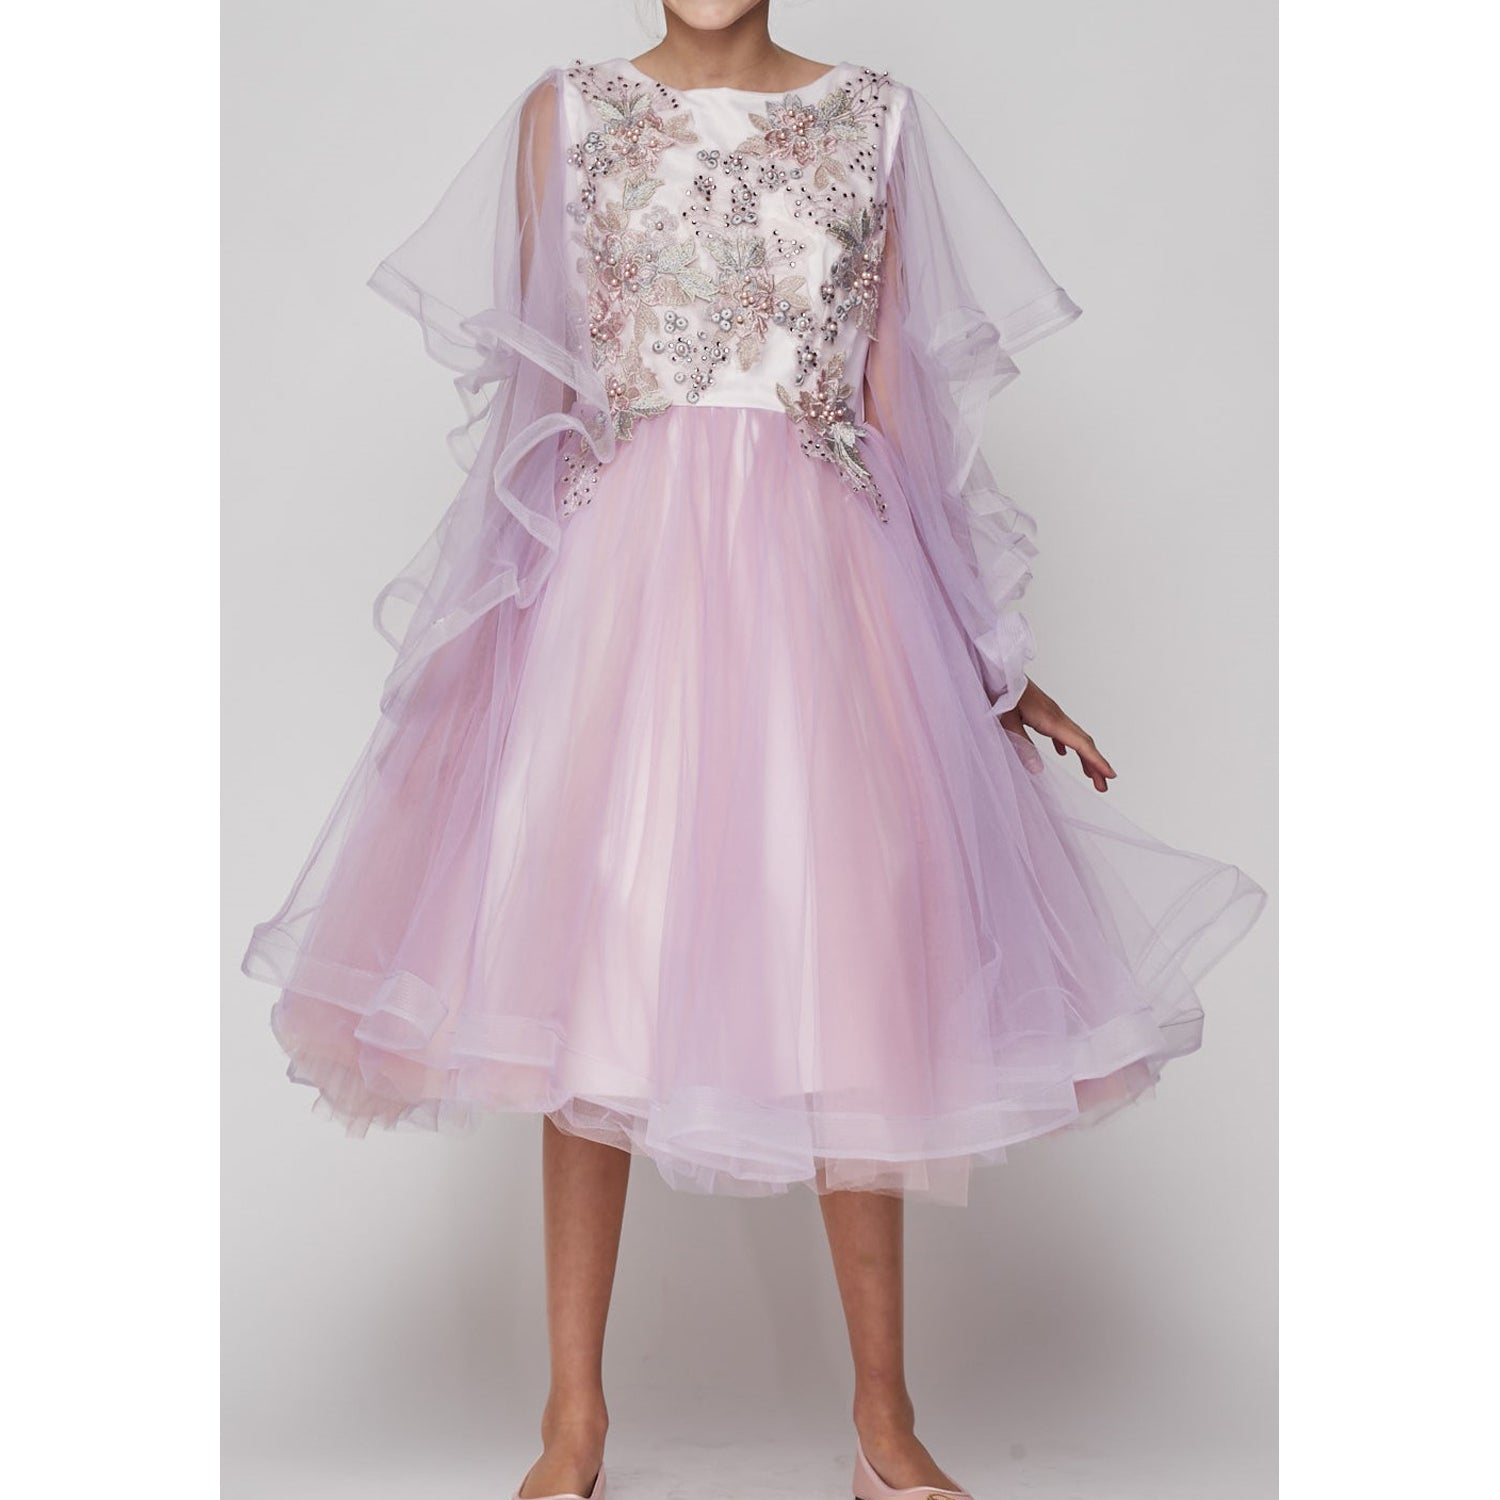 ILLUSION TRUMPET RUFFLE ORGANZA SLEEVES WITH MESH TULLE SKIRT